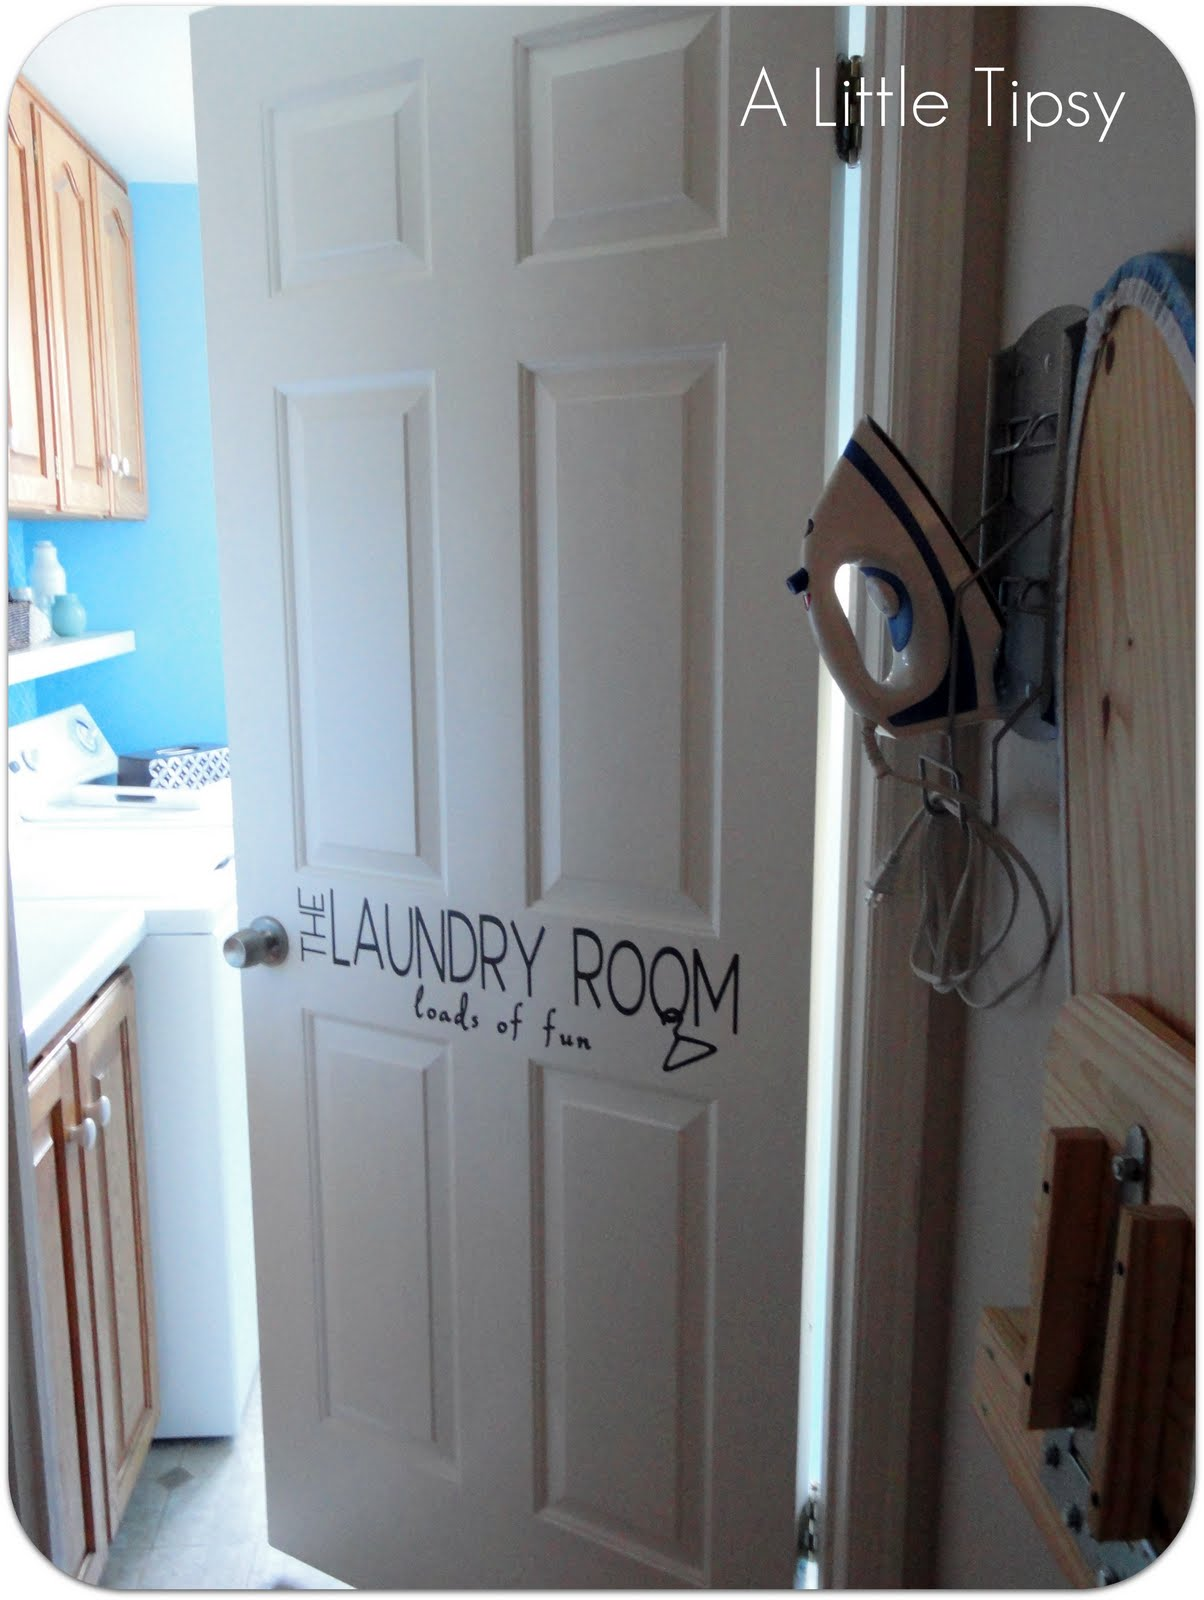 DIY Laundry Room - A Little Tipsy